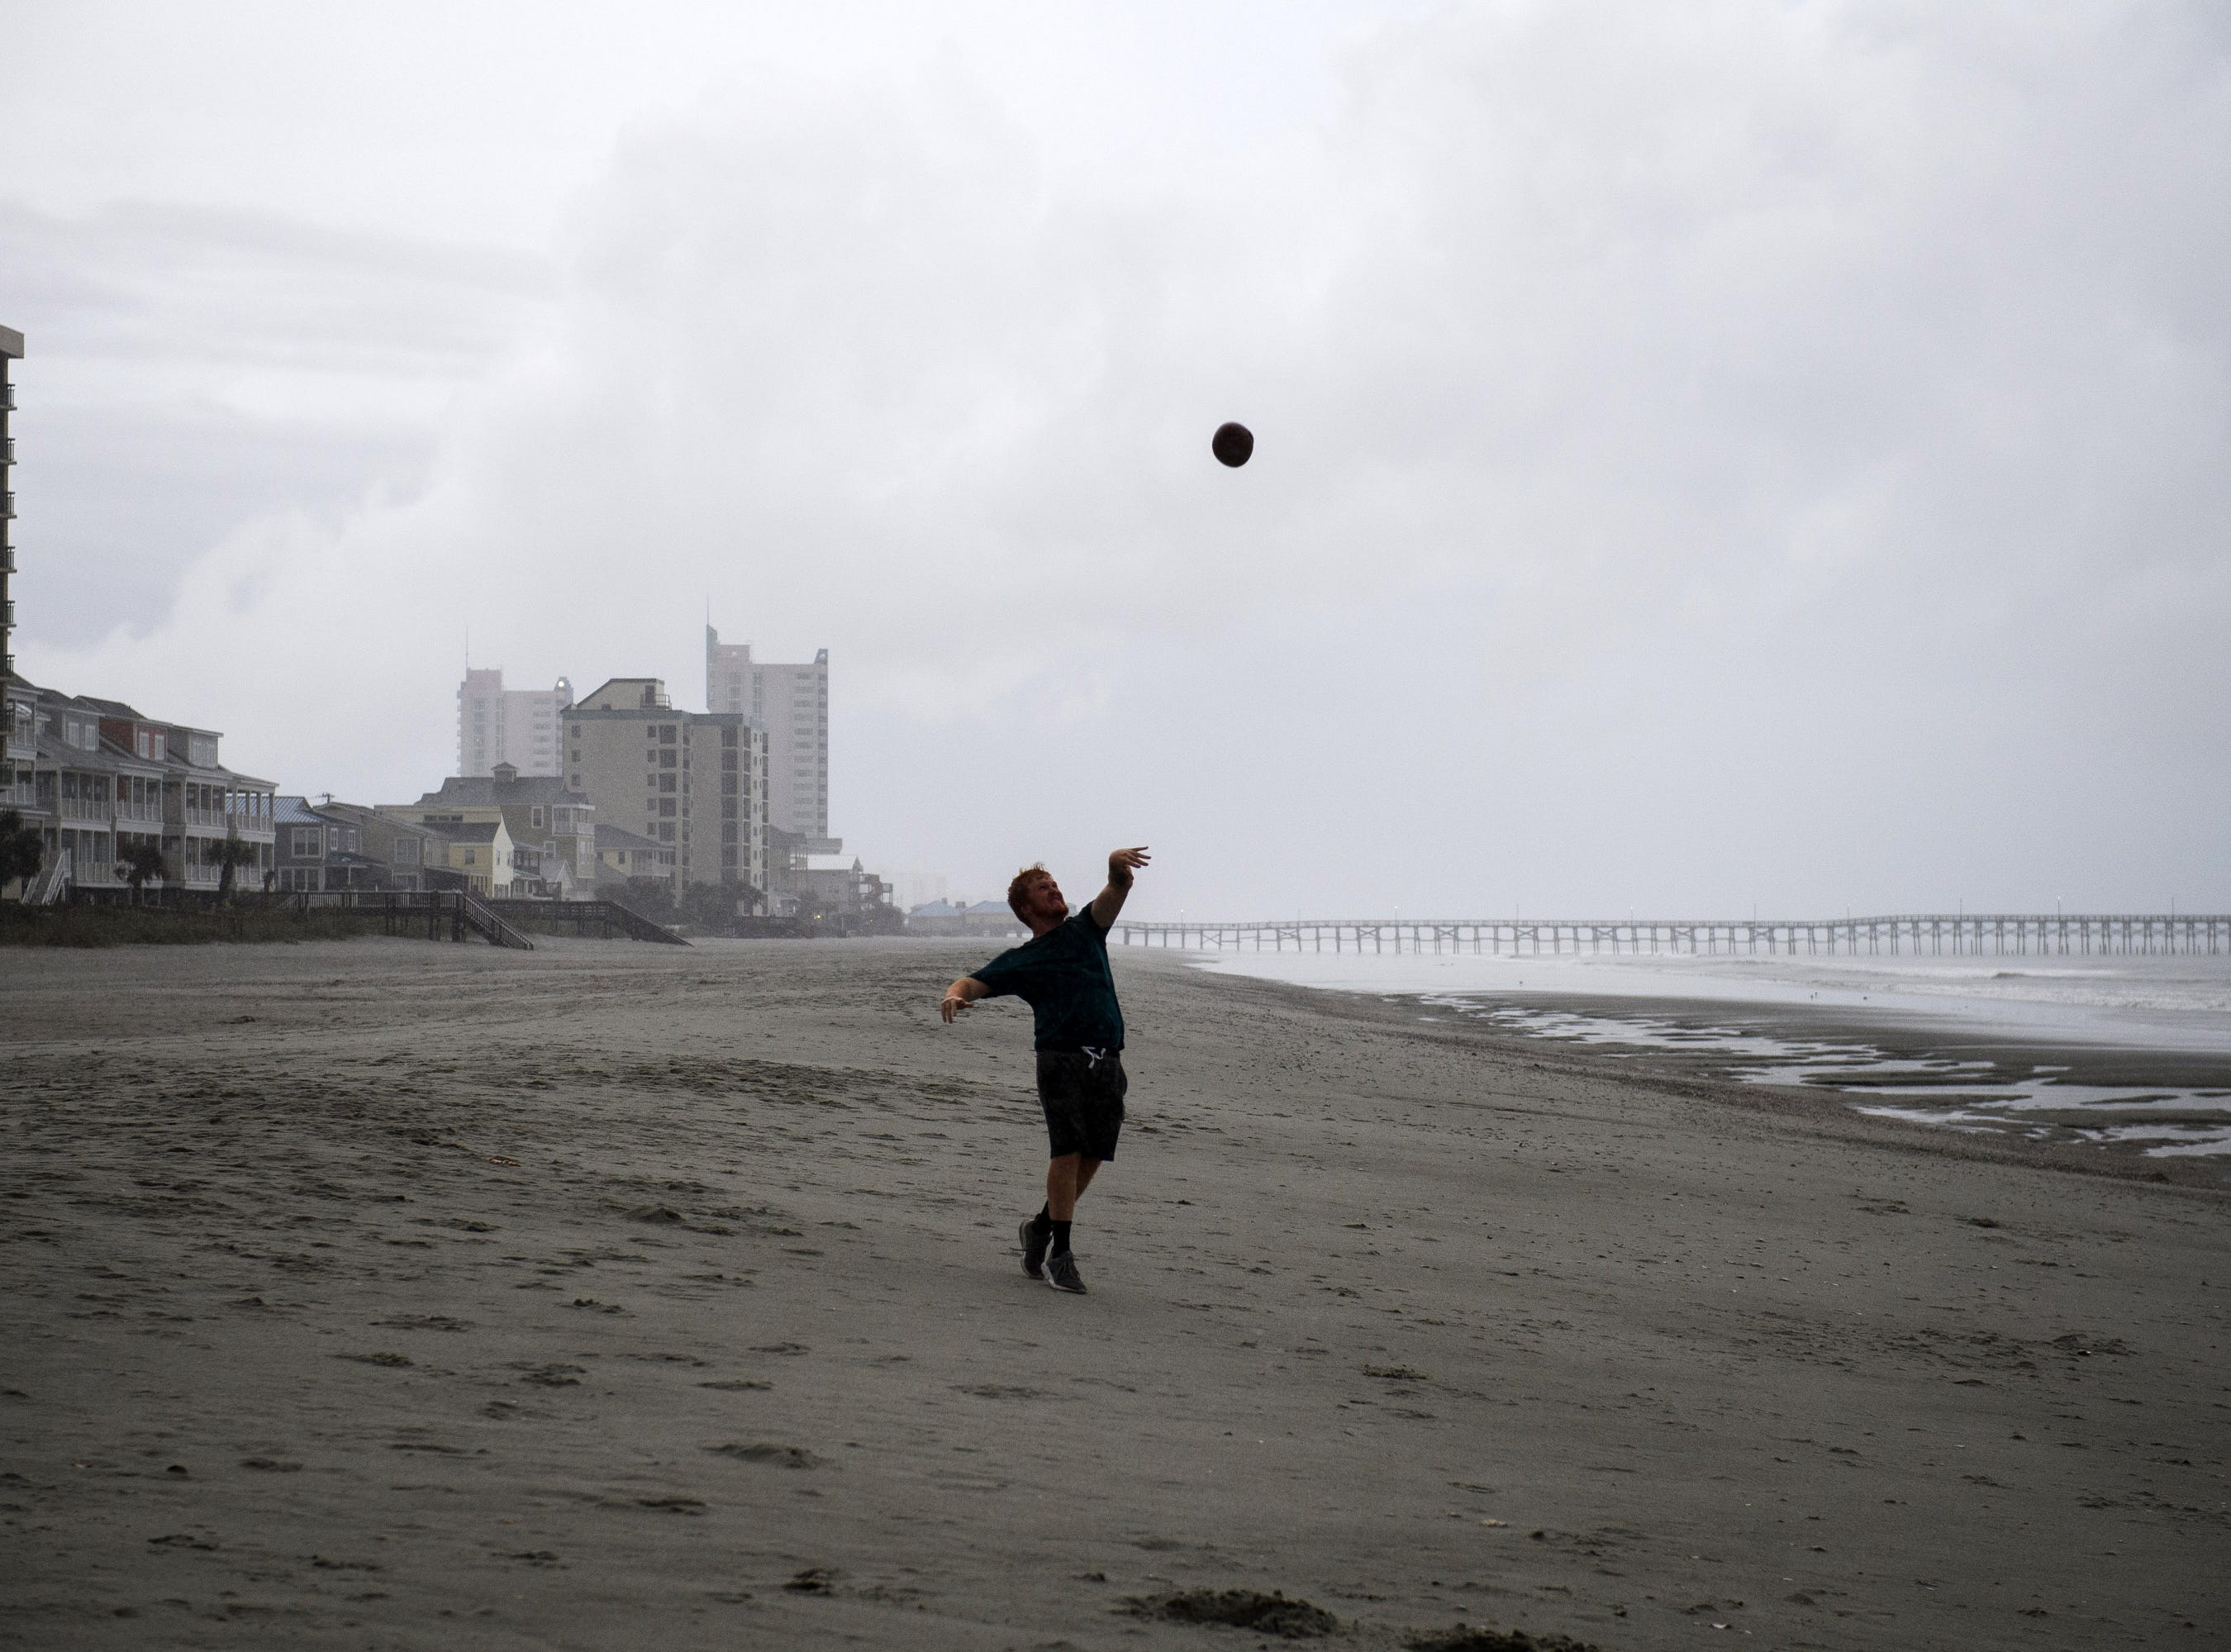 Sept 13, 2018, North Myrtle Beach, SC, USA; Noah Peele, 20, plays catch at Cherry Grove Beach in North Myrtle Beach as the first rain from a stray outer band of Hurricane Florence hits the area.